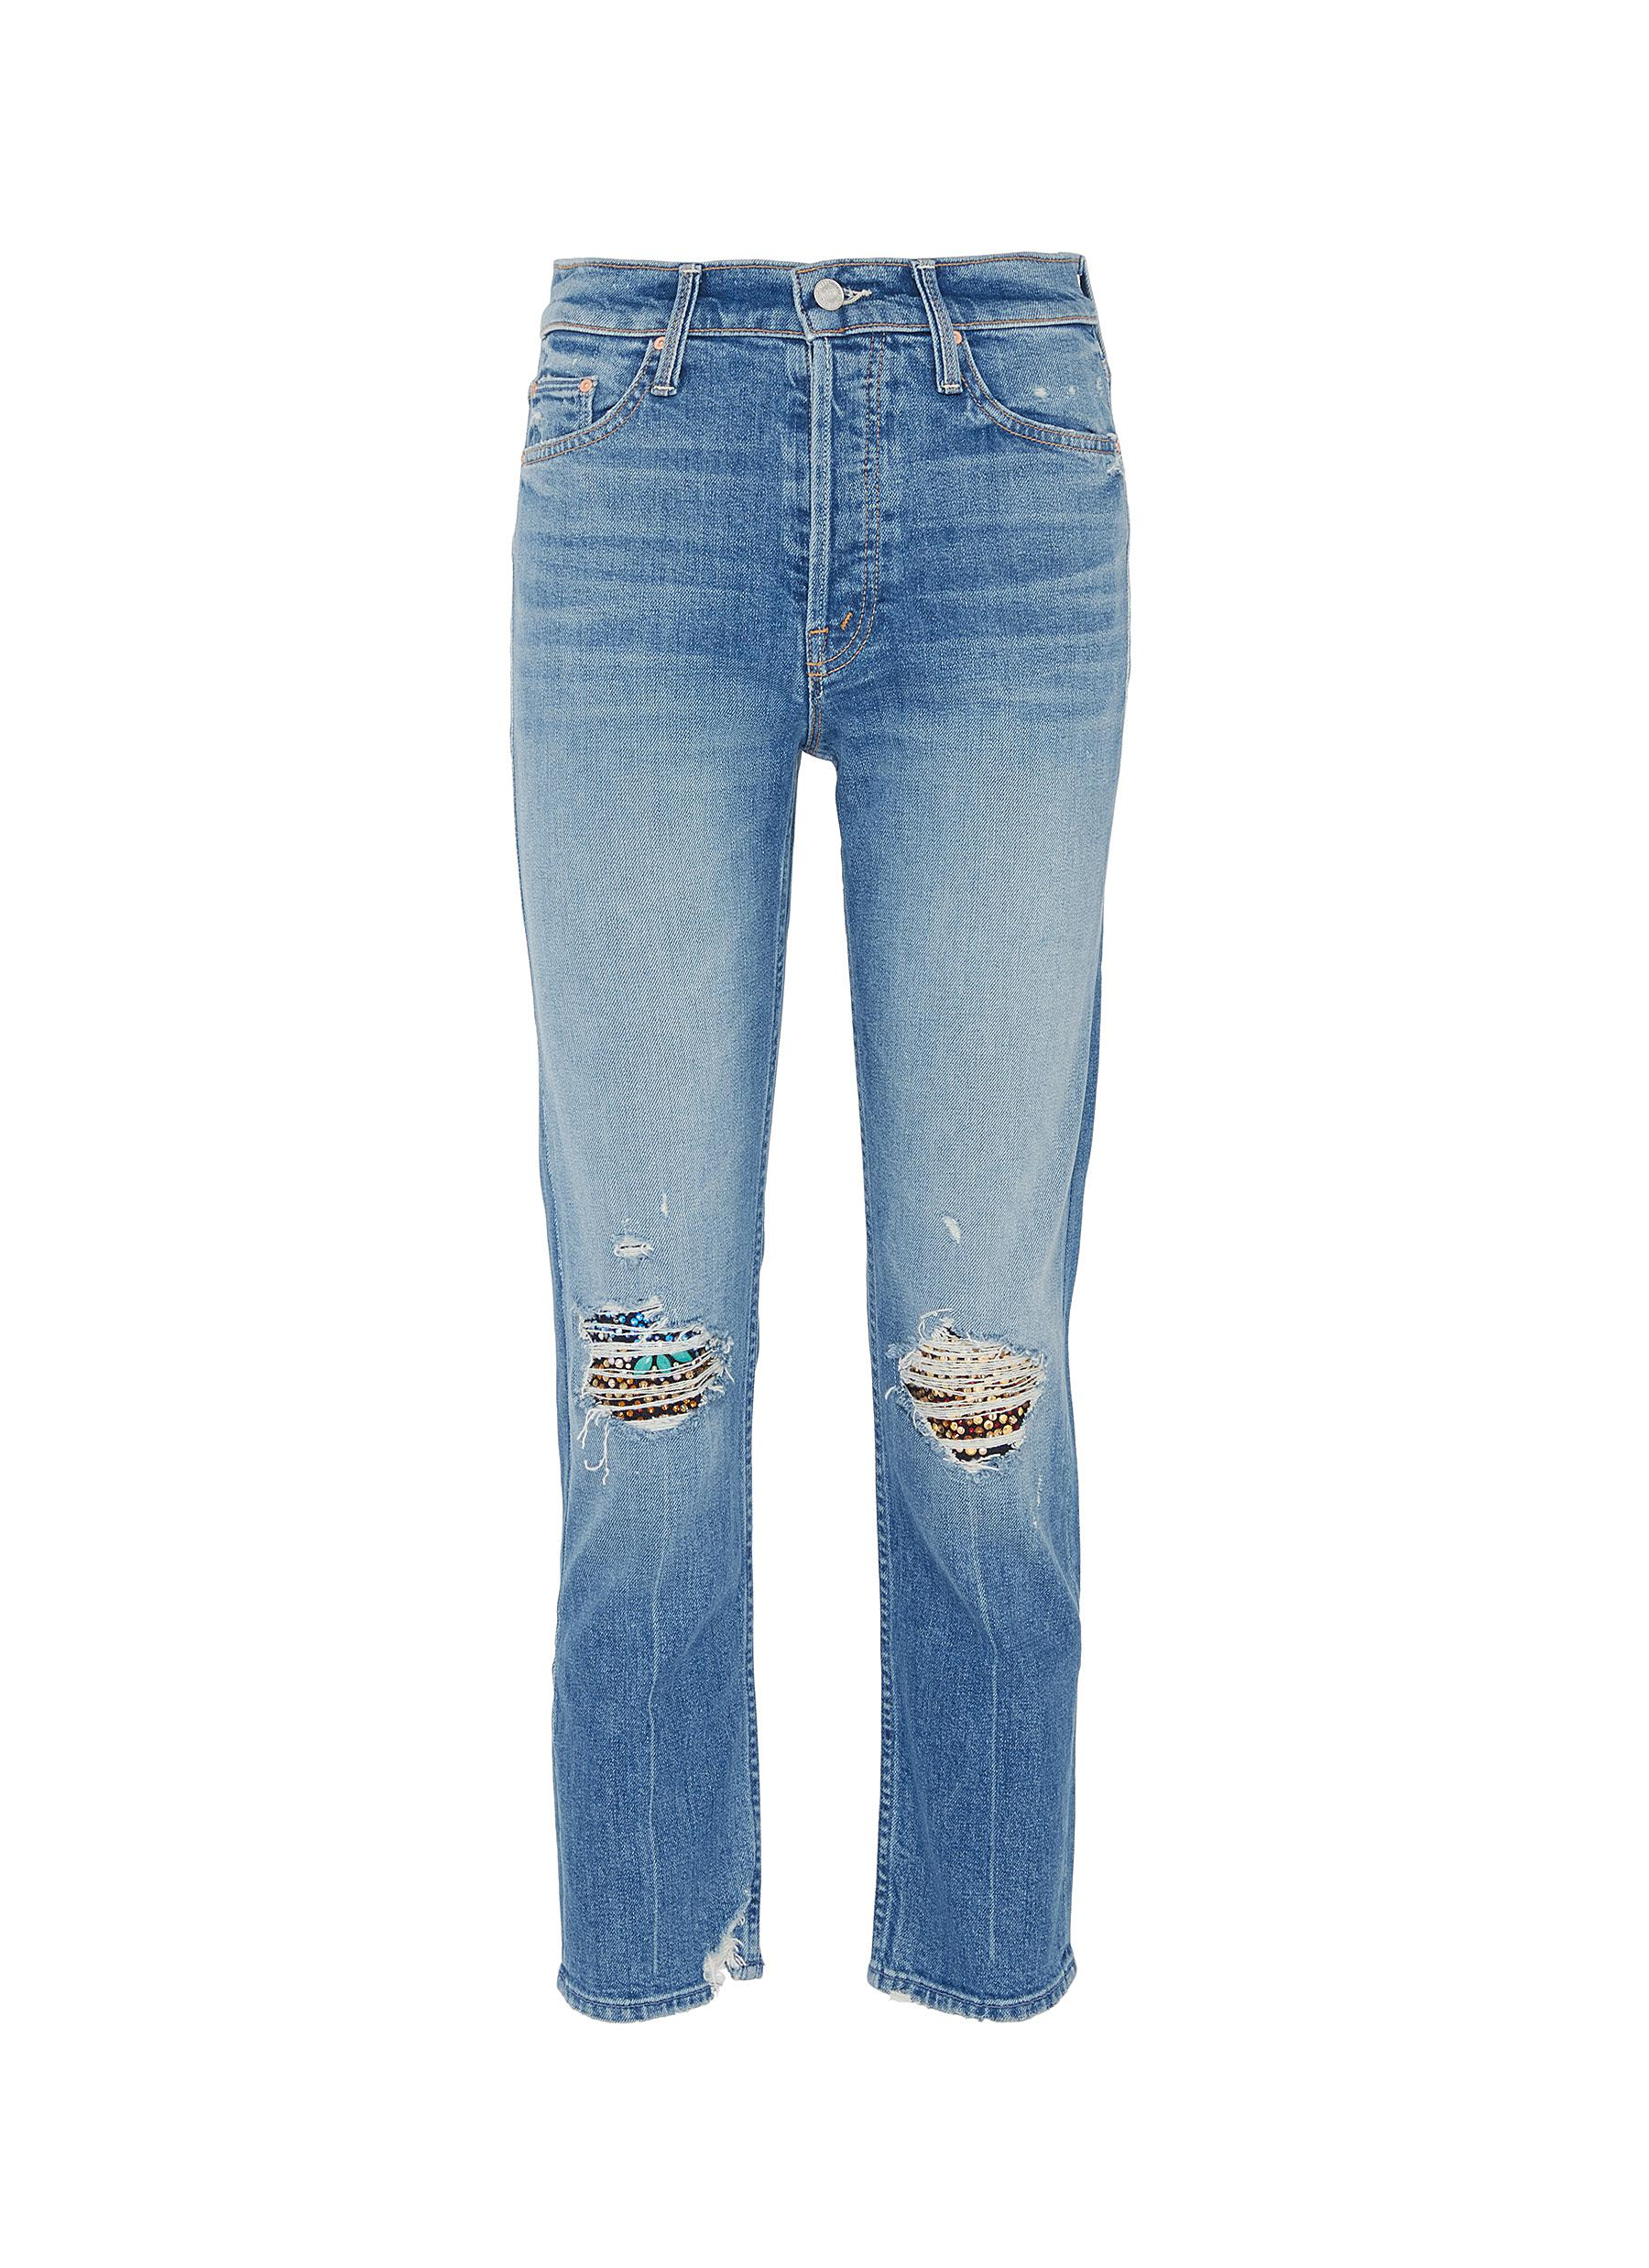 8f7f98365c MOTHER | 'The Tomcat' embellished patch ripped straight leg jeans ...